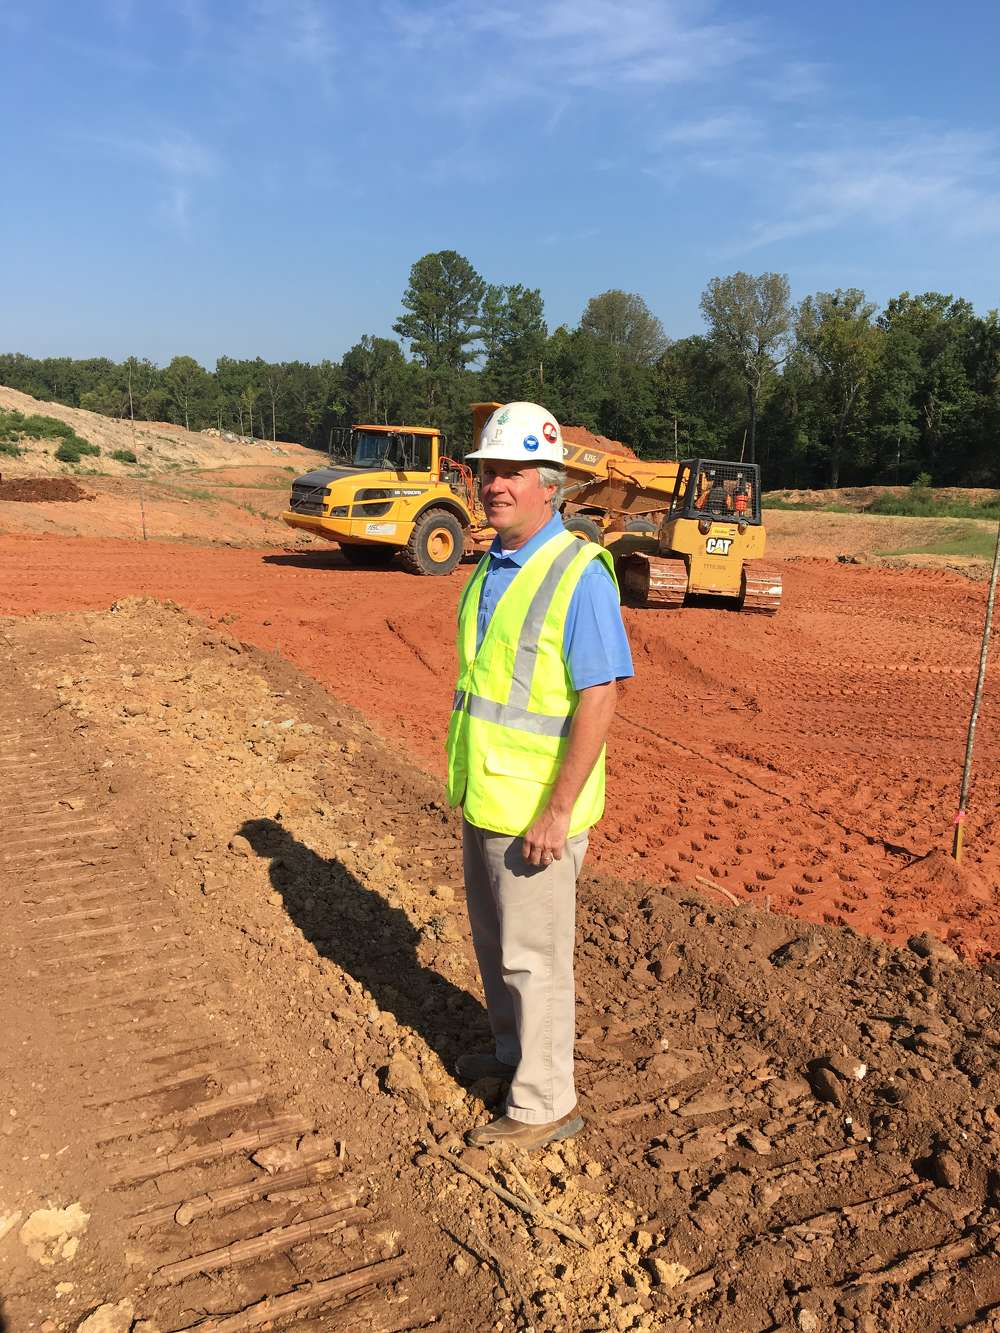 Dan Purcell, owner of Purcell Construction, Fort Mill, S.C., on the job at the Overlook at Barber Rock development in Lancaster, S.C.  It's a 30-acre project for Bontera Builders.